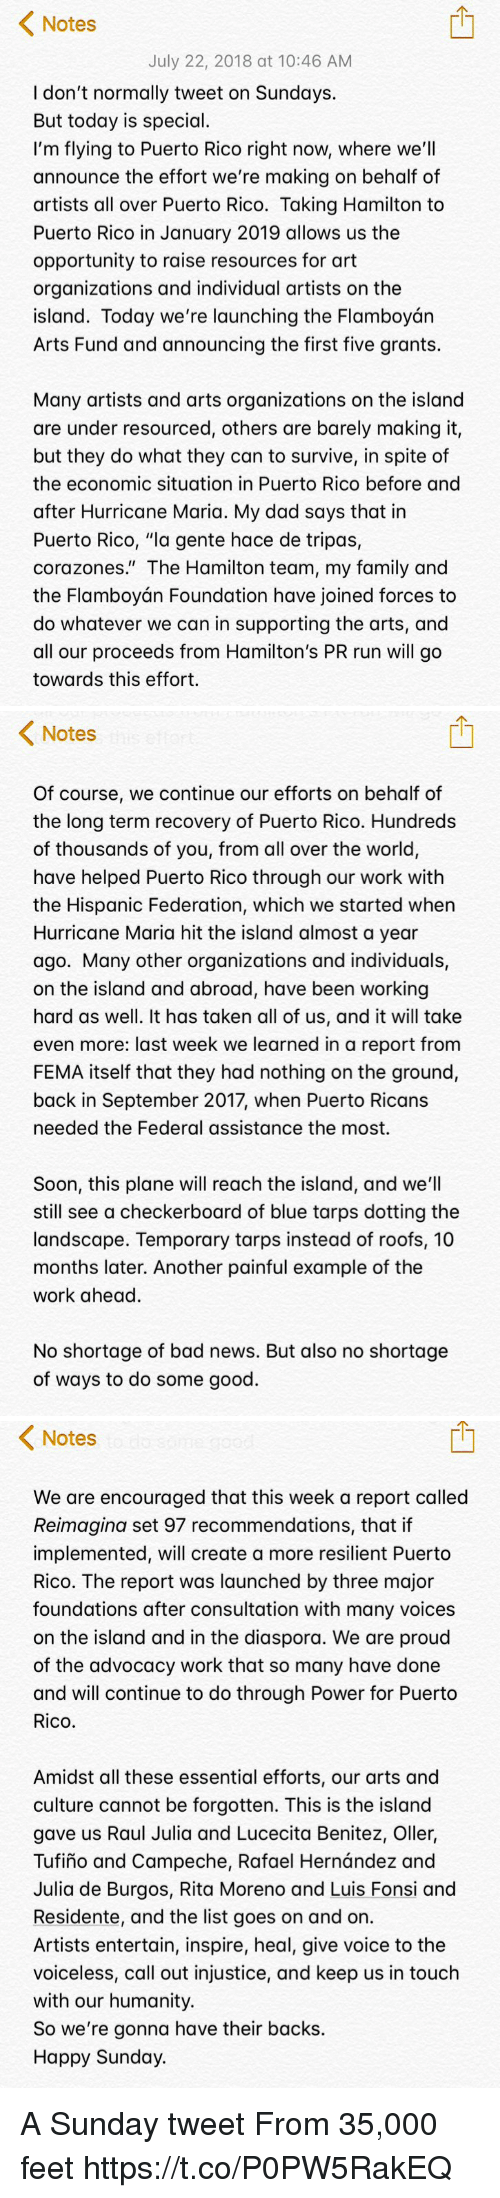 "Rafael: Notes  July 22, 2018 at 10:46 AM  I don't normally tweet on Sundays.  But today is special.  I'm flying to Puerto Rico right now, where we'll  announce the effort we're making on behalf of  artists all over Puerto Rico. Taking Hamilton to  Puerto Rico in January 2019 allows us the  opportunity to raise resources for art  organizations and individual artists on the  island. Today we're launching the Flamboyán  Arts Fund and announcing the first five grants.  Many artists and arts organizations on the island  are under resourced, others are barely making it,  but they do what they can to survive, in spite of  the economic situation in Puerto Rico before and  after Hurricane Maria. My dad says that in  Puerto Rico, ""la gente hace de tripas,  corazones."" The Hamilton team, my family and  the Flamboyán Foundation have joined forces to  do whatever we can in supporting the arts, and  all our proceeds from Hamilton's PR run will go  towards this effort.   Notes  Of course, we continue our efforts on behalf of  the long term recovery of Puerto Rico. Hundreds  of thousands of you, from all over the world,  have helped Puerto Rico through our work with  the Hispanic Federation, which we started when  Hurricane Maria hit the island almost a year  ago. Many other organizations and individuals,  on the island and abroad, have been working  hard as well. It has taken all of us, and it will take  even more: last week we learned in a report from  FEMA itself that they had nothing on the ground,  back in September 2017, when Puerto Ricans  needed the Federal assistance the most.  Soon, this plane will reach the island, and we'll  still see a checkerboard of blue tarps dotting the  landscape. Temporary tarps instead of roofs, 10  months later. Another painful example of the  work ahead.  No shortage of bad news. But also no shortage  of ways to do some good.   < Notes  We are encouraged that this week a report called  Reimagina set 97 recommendations, that if  implemented, will create a more resilient Puerto  Rico. The report was launched by three major  foundations after consultation with many voices  on the island and in the diaspora. We are proud  of the advocacy work that so many have done  and will continue to do through Power for Puerto  Rico.  Amidst all these essential efforts, our arts and  culture cannot be forgotten. This is the island  gave us Raul Julia and Lucecita Benitez, Oller,  Tufiño and Campeche, Rafael Hernández and  Julia de Burgos, Rita Moreno and Luis Fonsi and  Residente, and the list goes on and on.  Artists entertain, inspire, heal, give voice to the  voiceless, call out injustice, and keep us in touch  with our humanity.  So we're gonna have their backs.  Happy Sunday. A Sunday tweet From 35,000 feet https://t.co/P0PW5RakEQ"